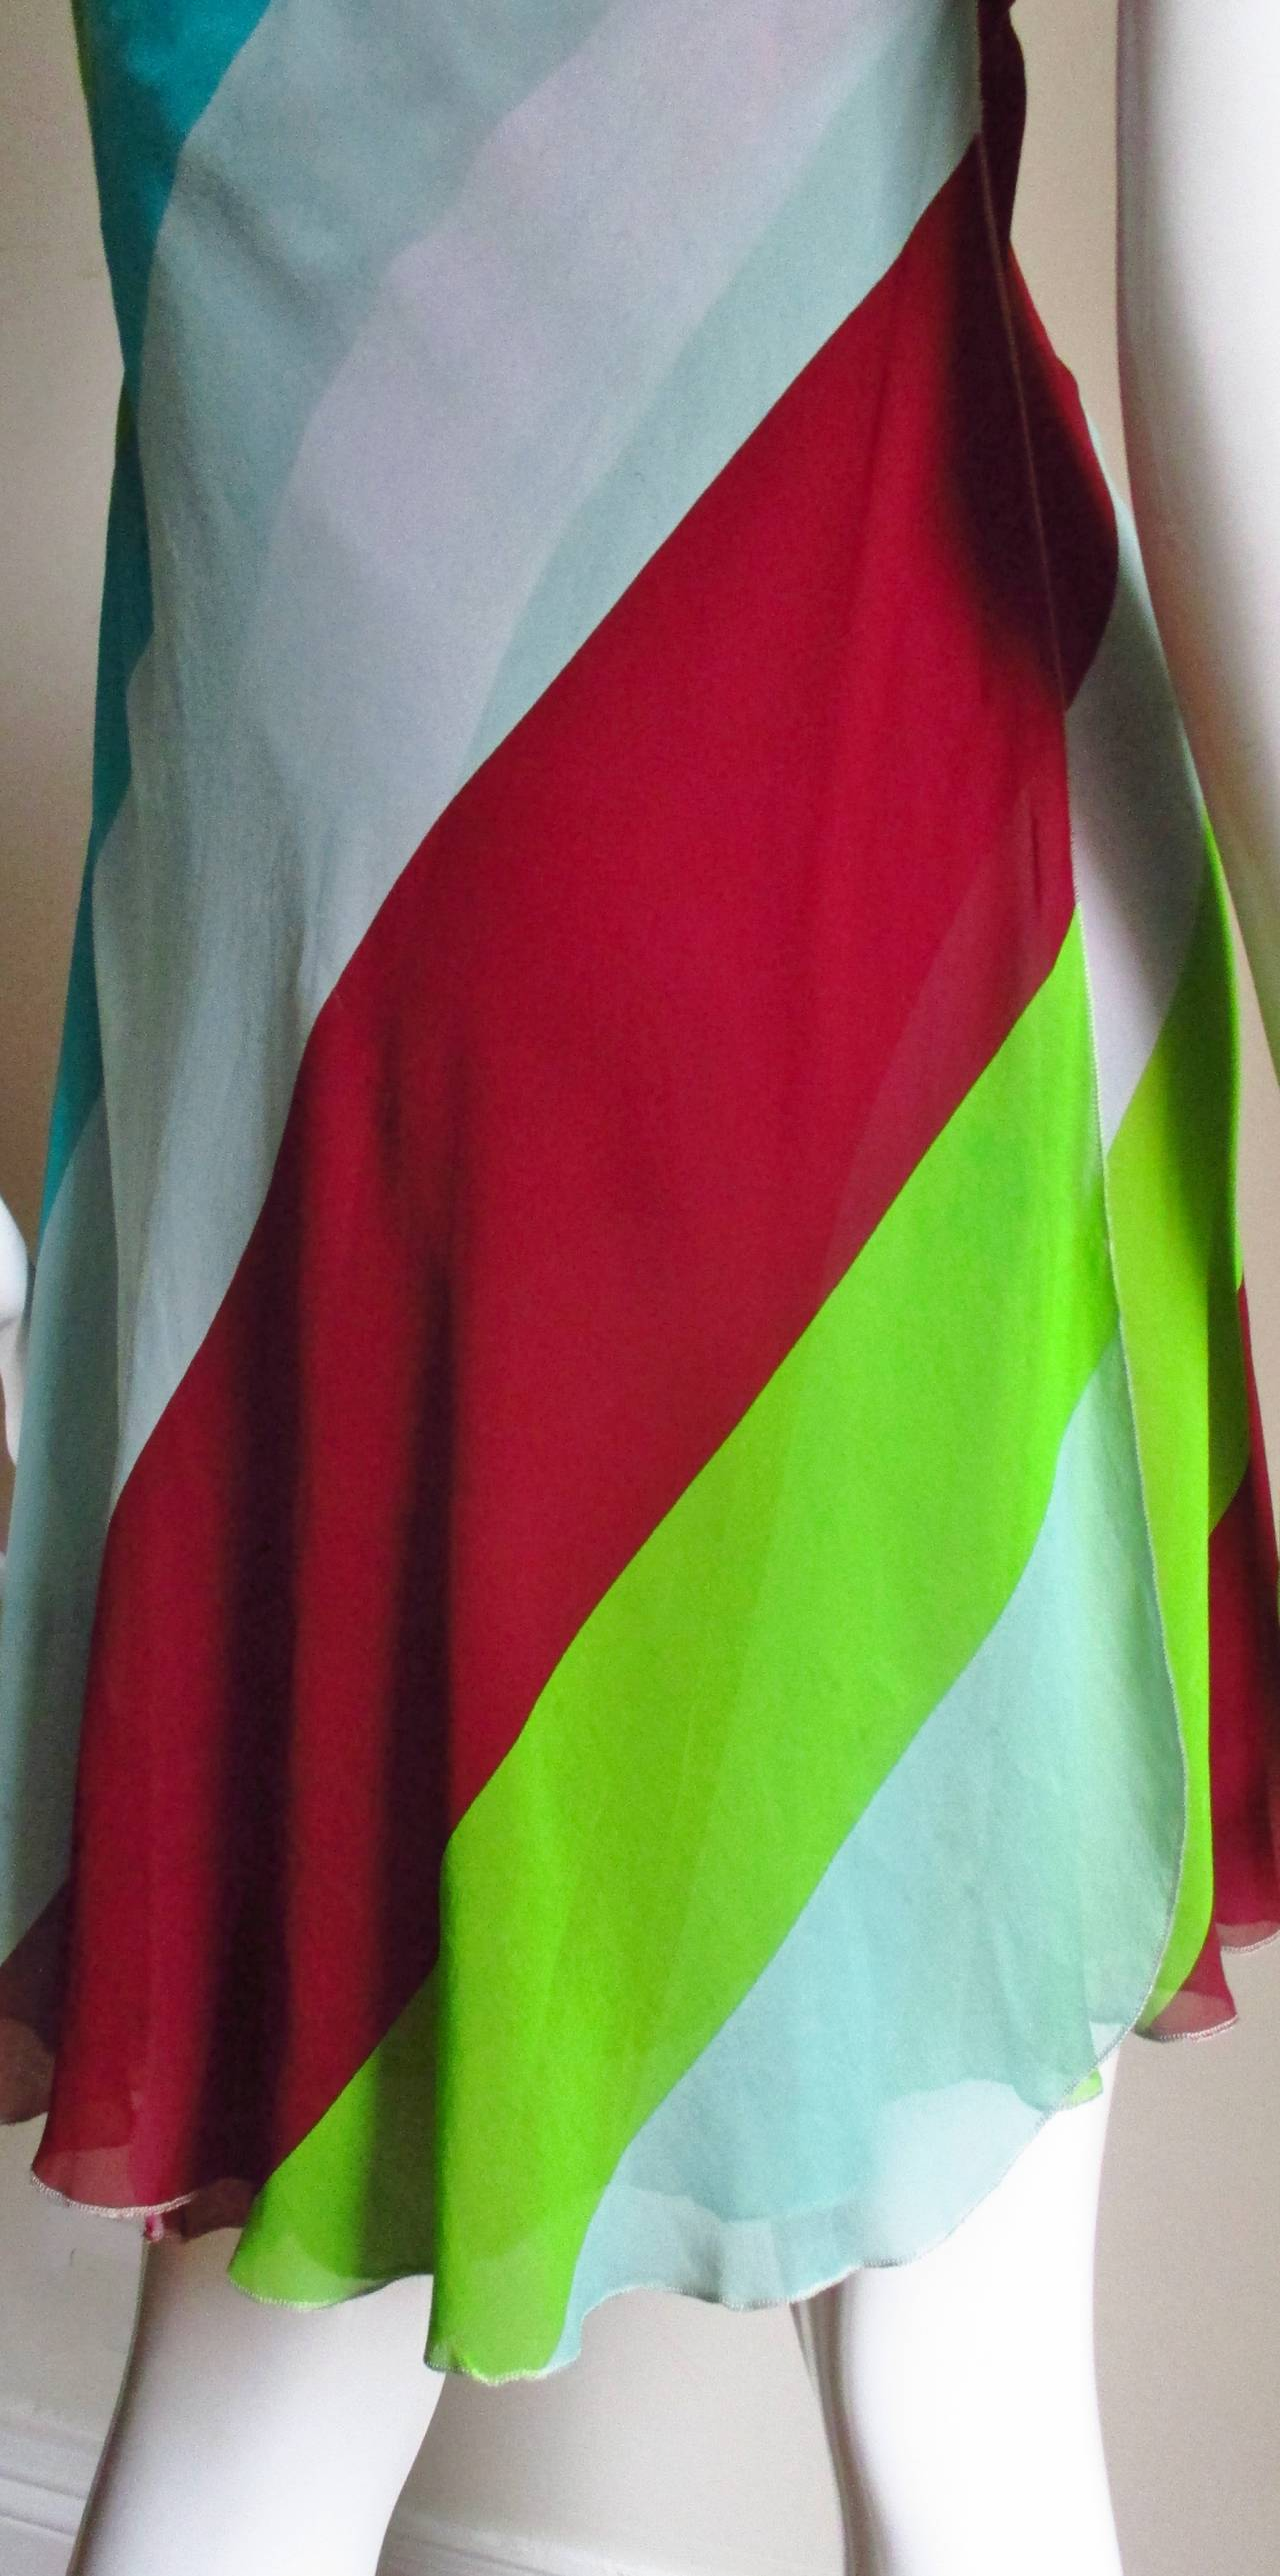 1990s Gianni Versace Striped Silk Babydoll Dress For Sale 3